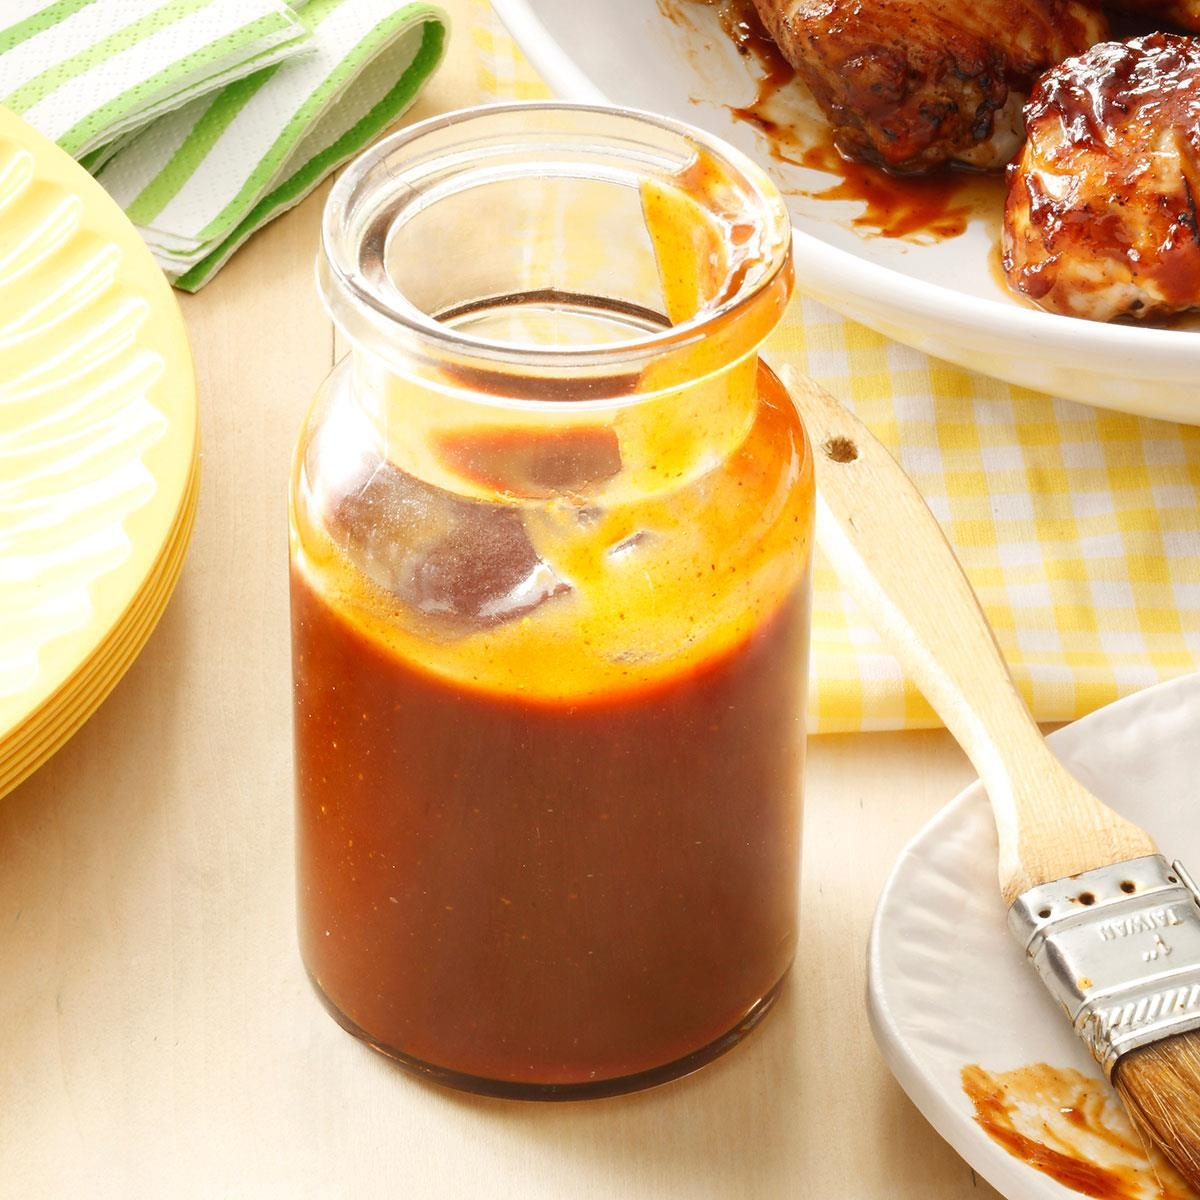 Sweet & Spicy Barbecue Sauce Recipe